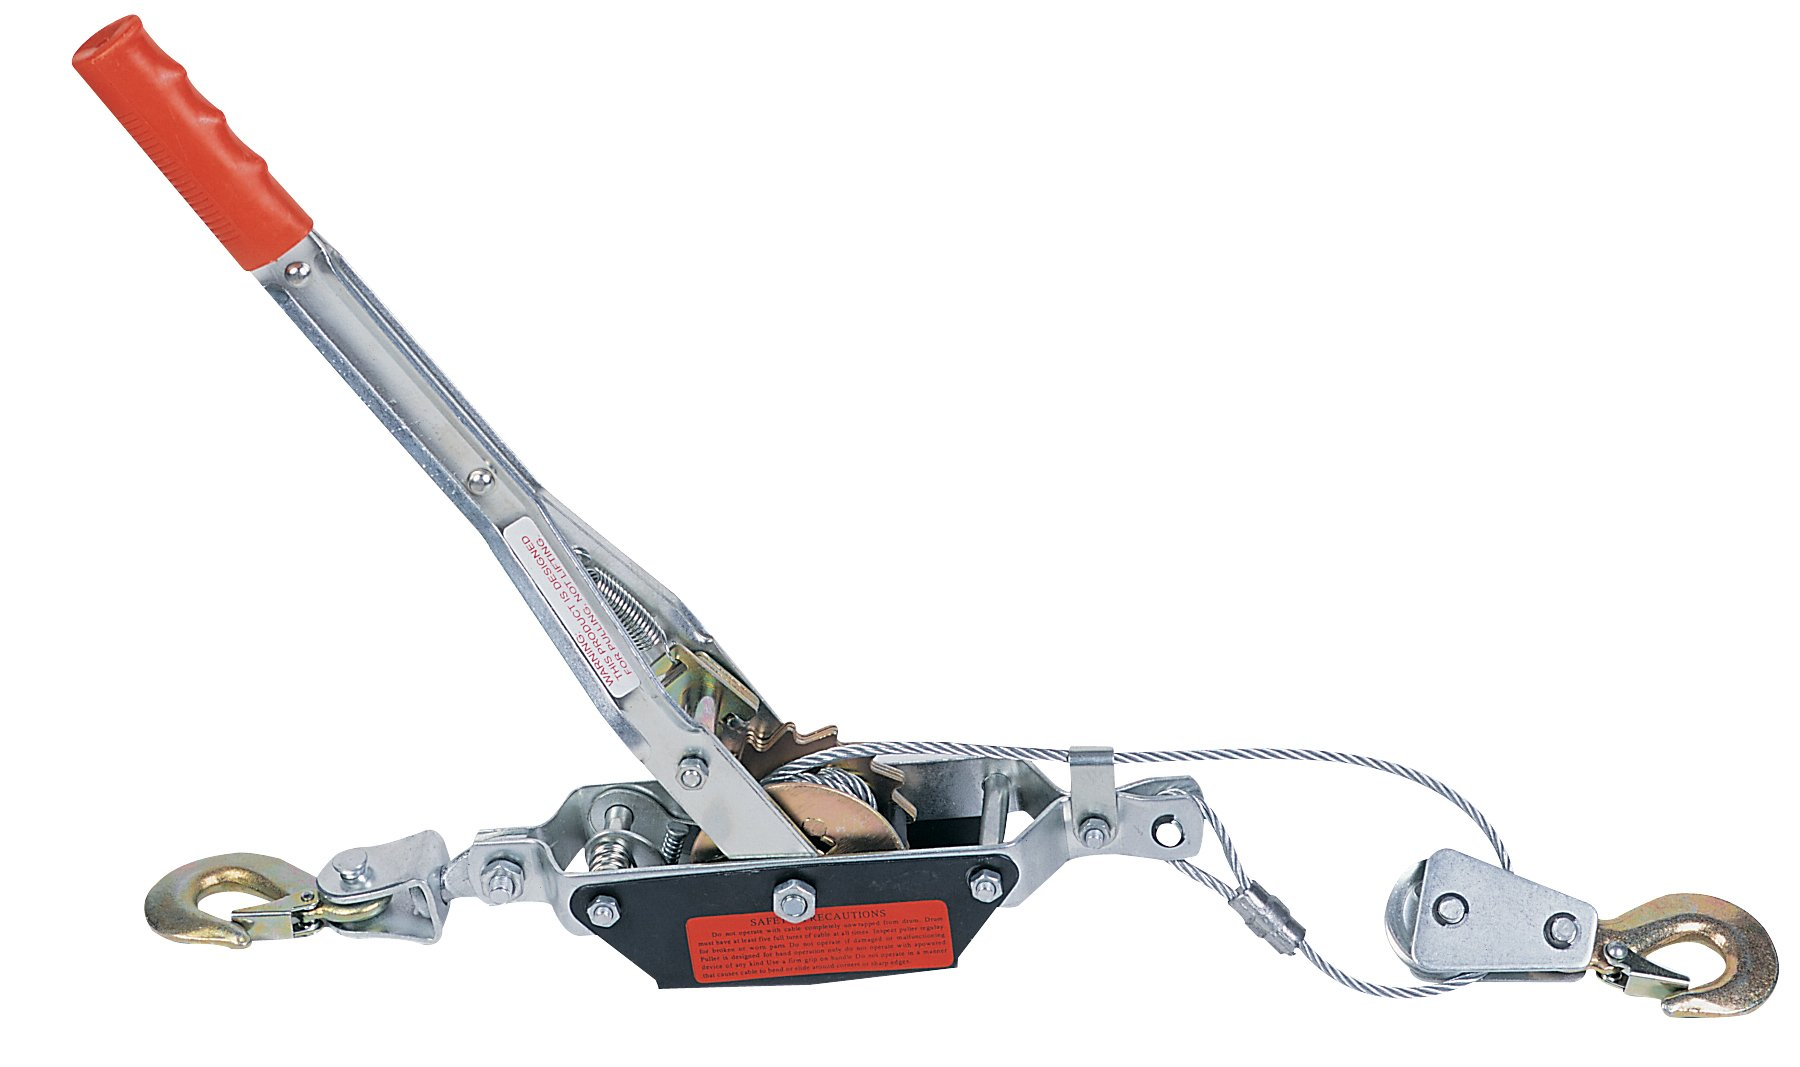 JLTC HP20D Hand Puller, 4400-Pound Tractor Capacity, 10-Foot Cable